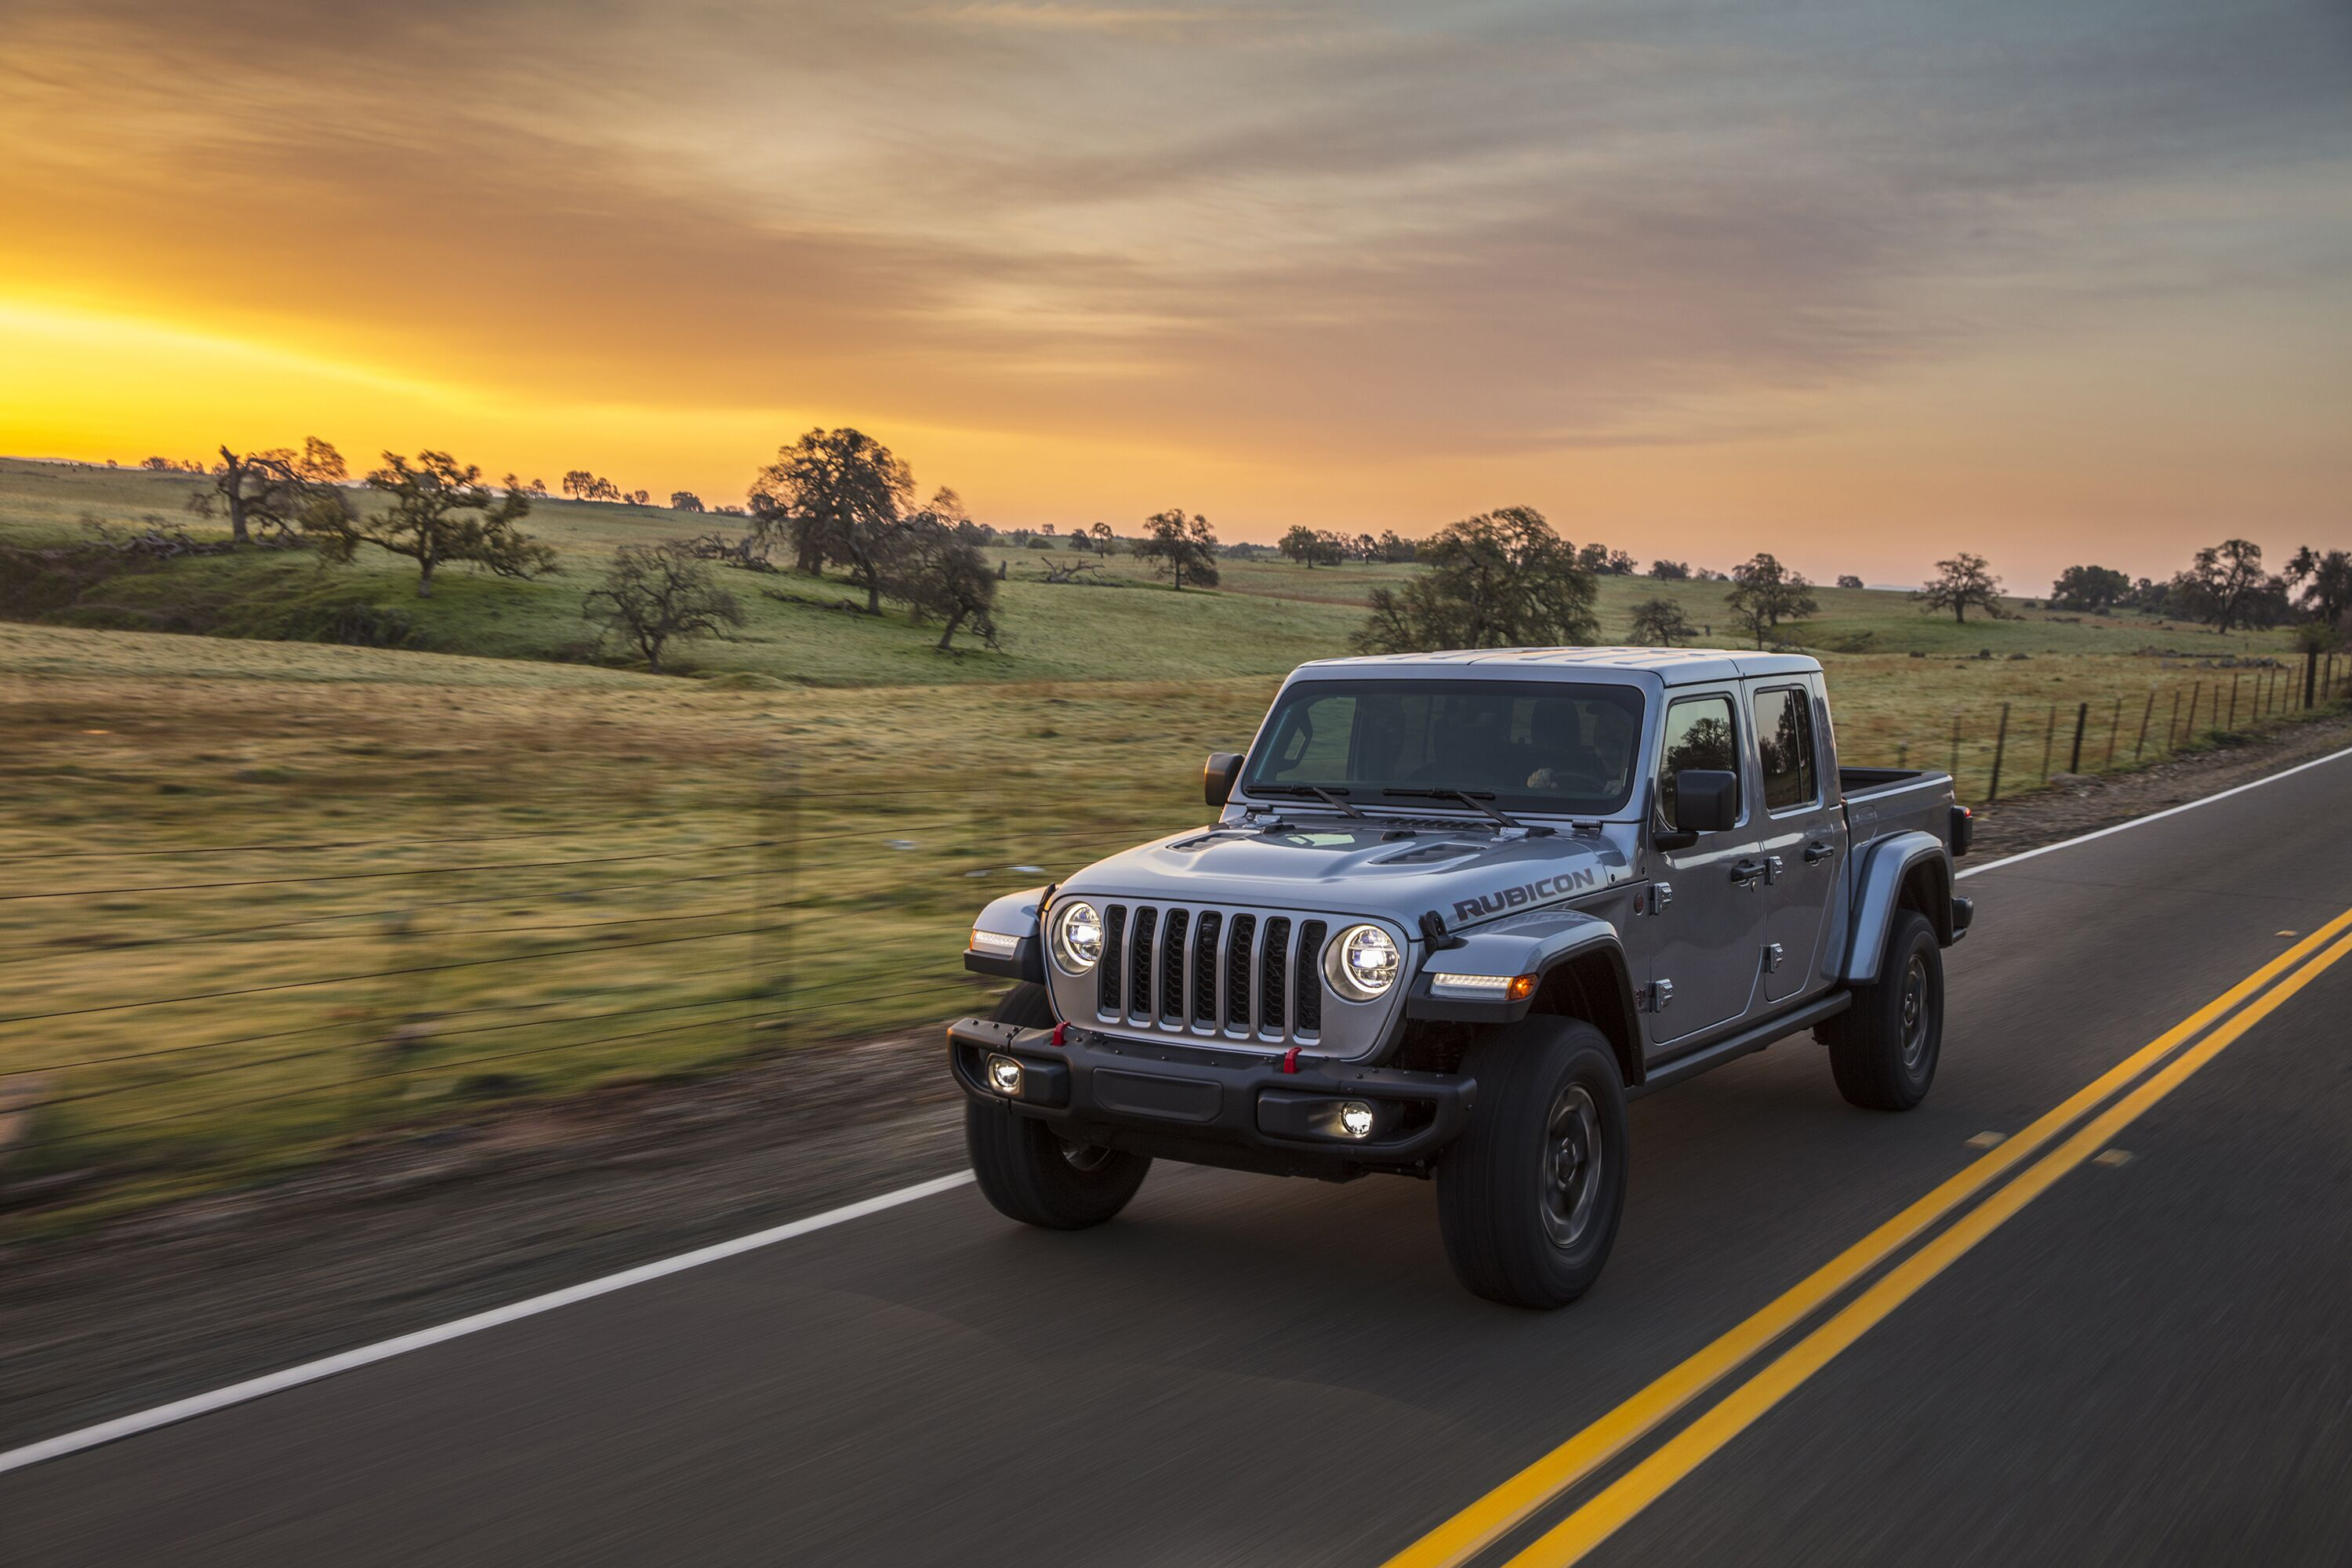 2020 Jeep Gladiator with beautiful sunset in background